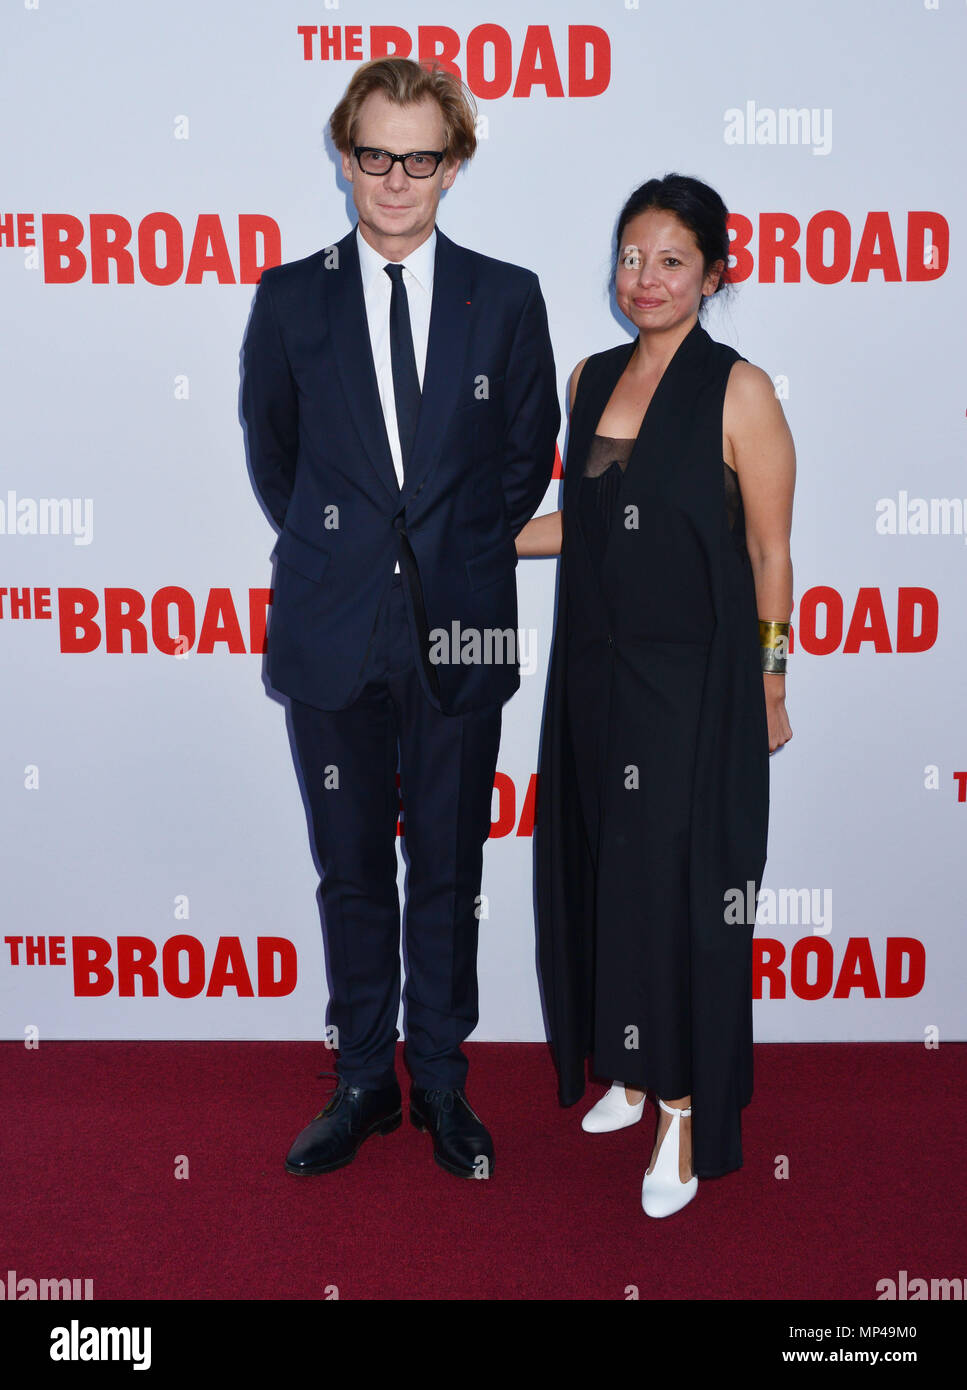 Philippe Vergne 201 at The Broad Museum Opening and Inaugural Dinner at the Broad Museum in Los Angeles. September 17, 2015.Philippe Vergne 201 ------------- Red Carpet Event, Vertical, USA, Film Industry, Celebrities,  Photography, Bestof, Arts Culture and Entertainment, Topix Celebrities fashion /  Vertical, Best of, Event in Hollywood Life - California,  Red Carpet and backstage, USA, Film Industry, Celebrities,  movie celebrities, TV celebrities, Music celebrities, Photography, Bestof, Arts Culture and Entertainment,  Topix, vertical,  family from from the year , 2015, inquiry tsuni@Gamma- - Stock Image